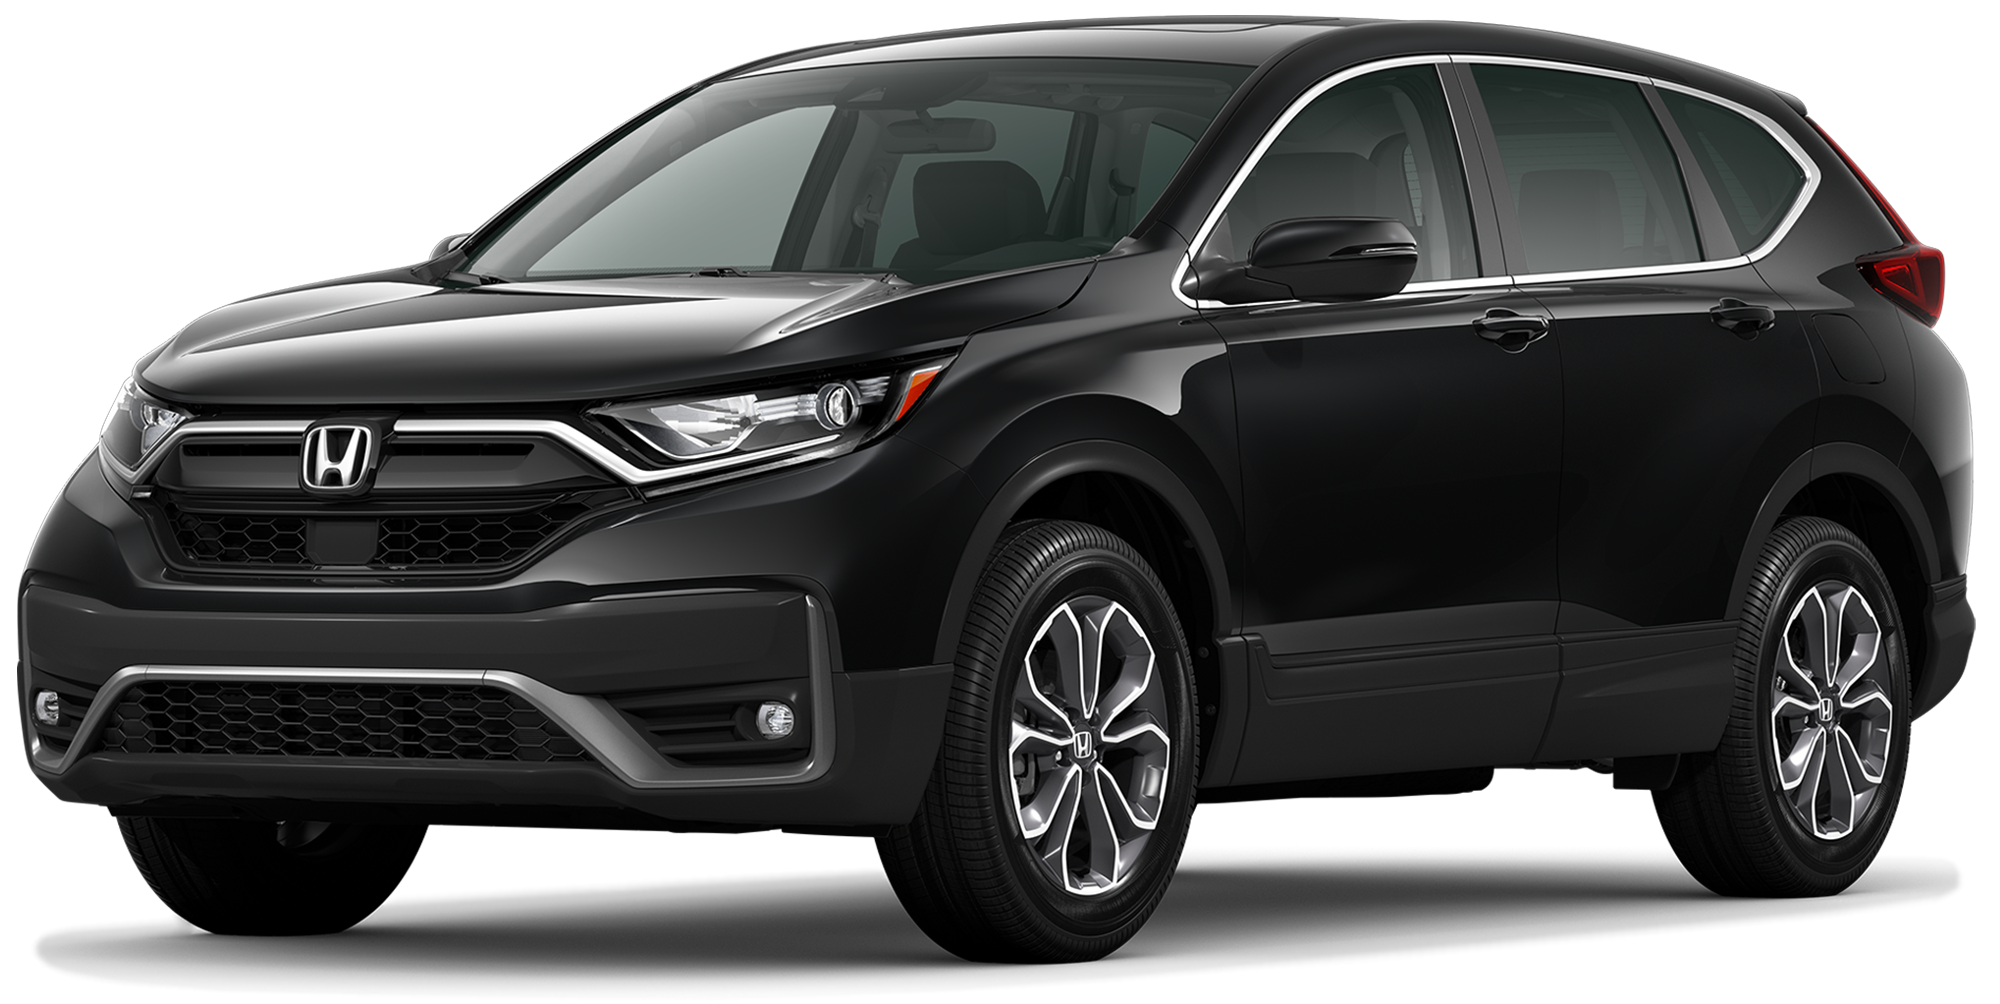 http://images.dealer.com/ddc/vehicles/2020/Honda/CR-V/SUV/trim_EX_d081b8/perspective/front-left/2020_76.png